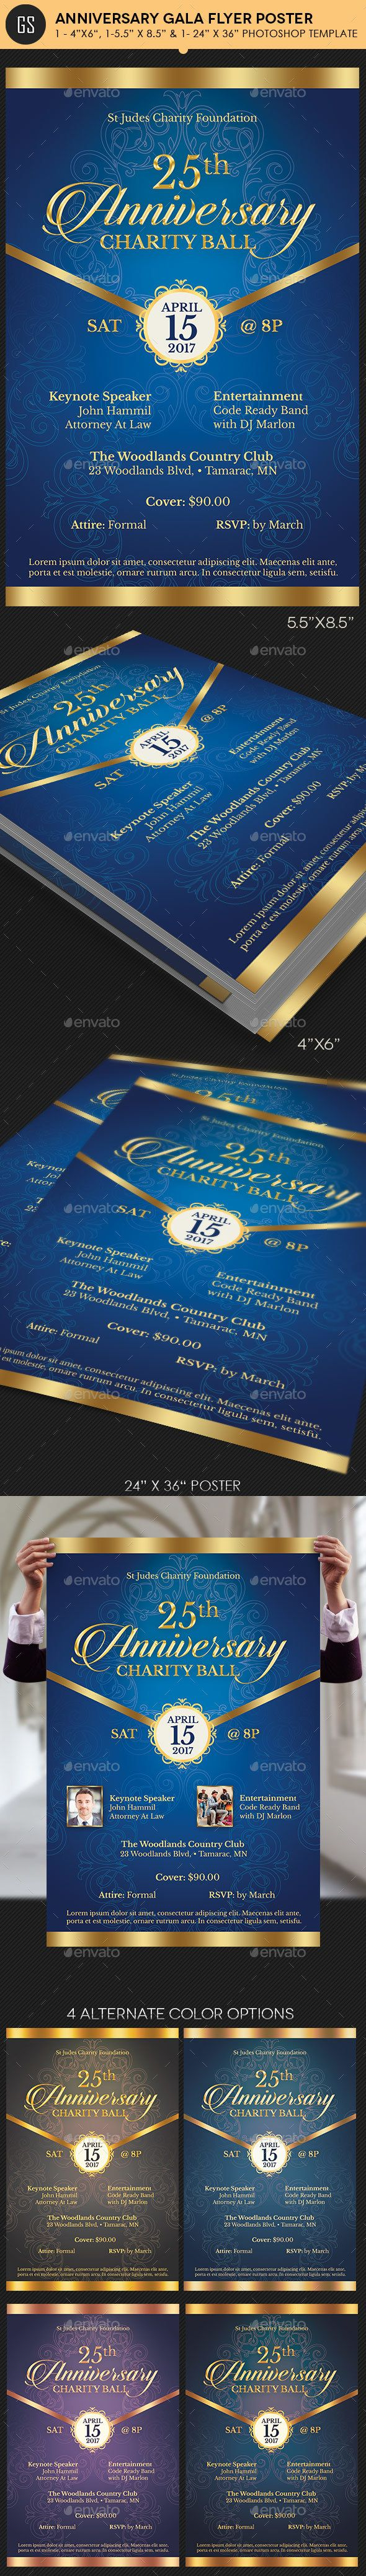 Blue Anniversary Gala Flyer Poster Template 14